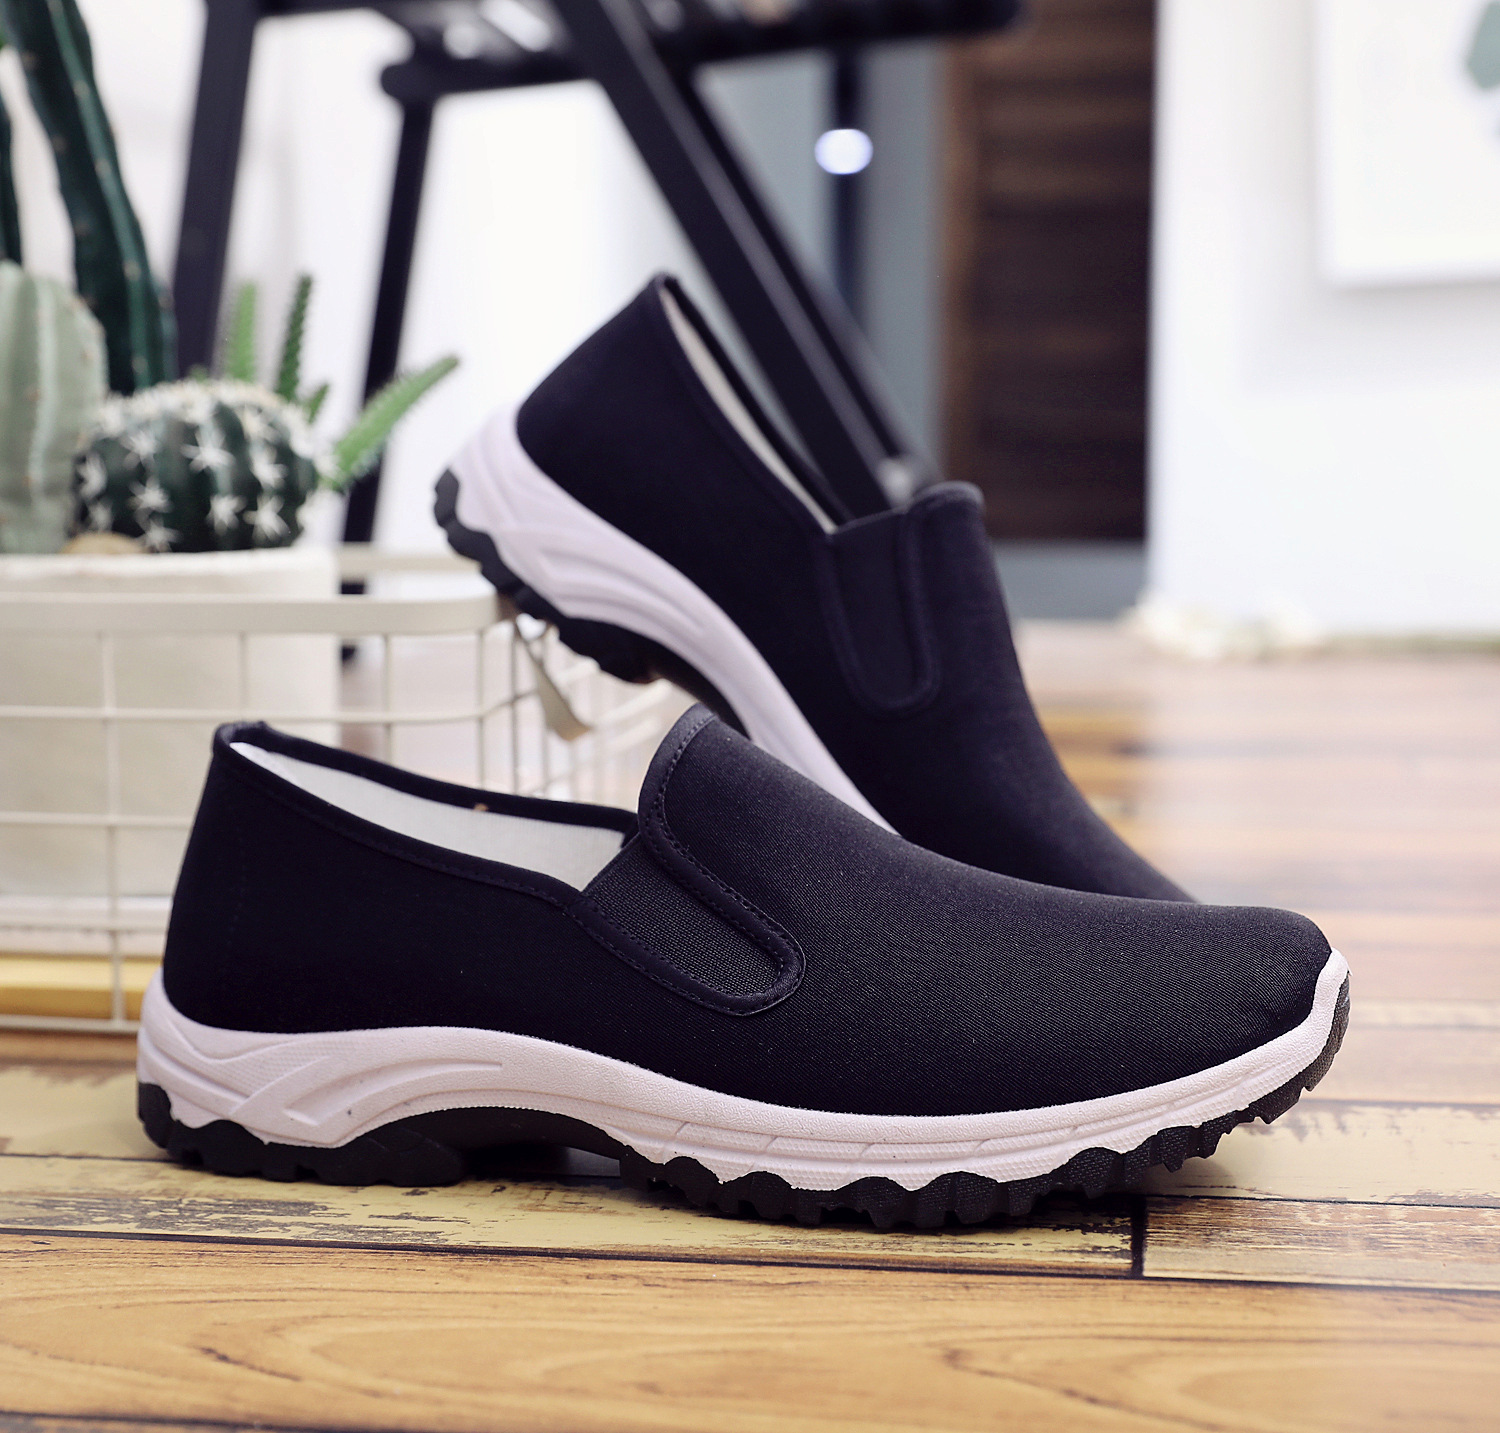 2018 New Spring And Autumn Mens Single Mesh Shoes Casual Shoes A Pedal Comfortable Soft Bottom Lazy Shoes Mens Shoes Men Shoes Men's Casual Shoes